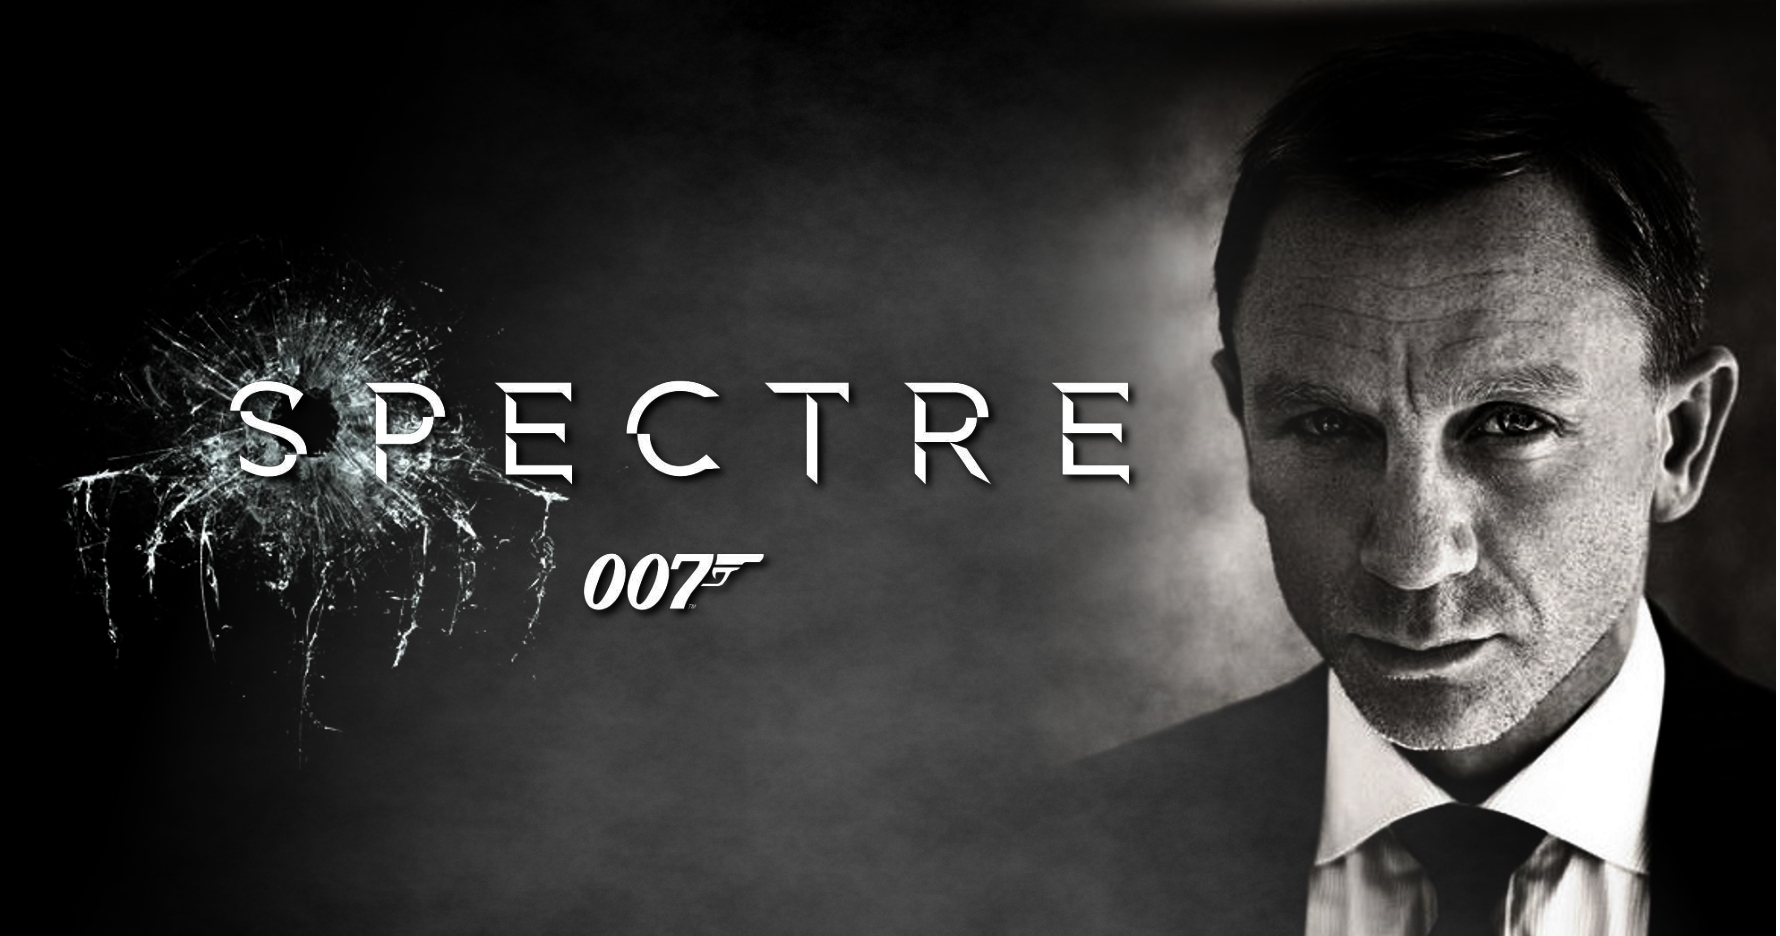 SPECTRE movie poster with Daniel Craig